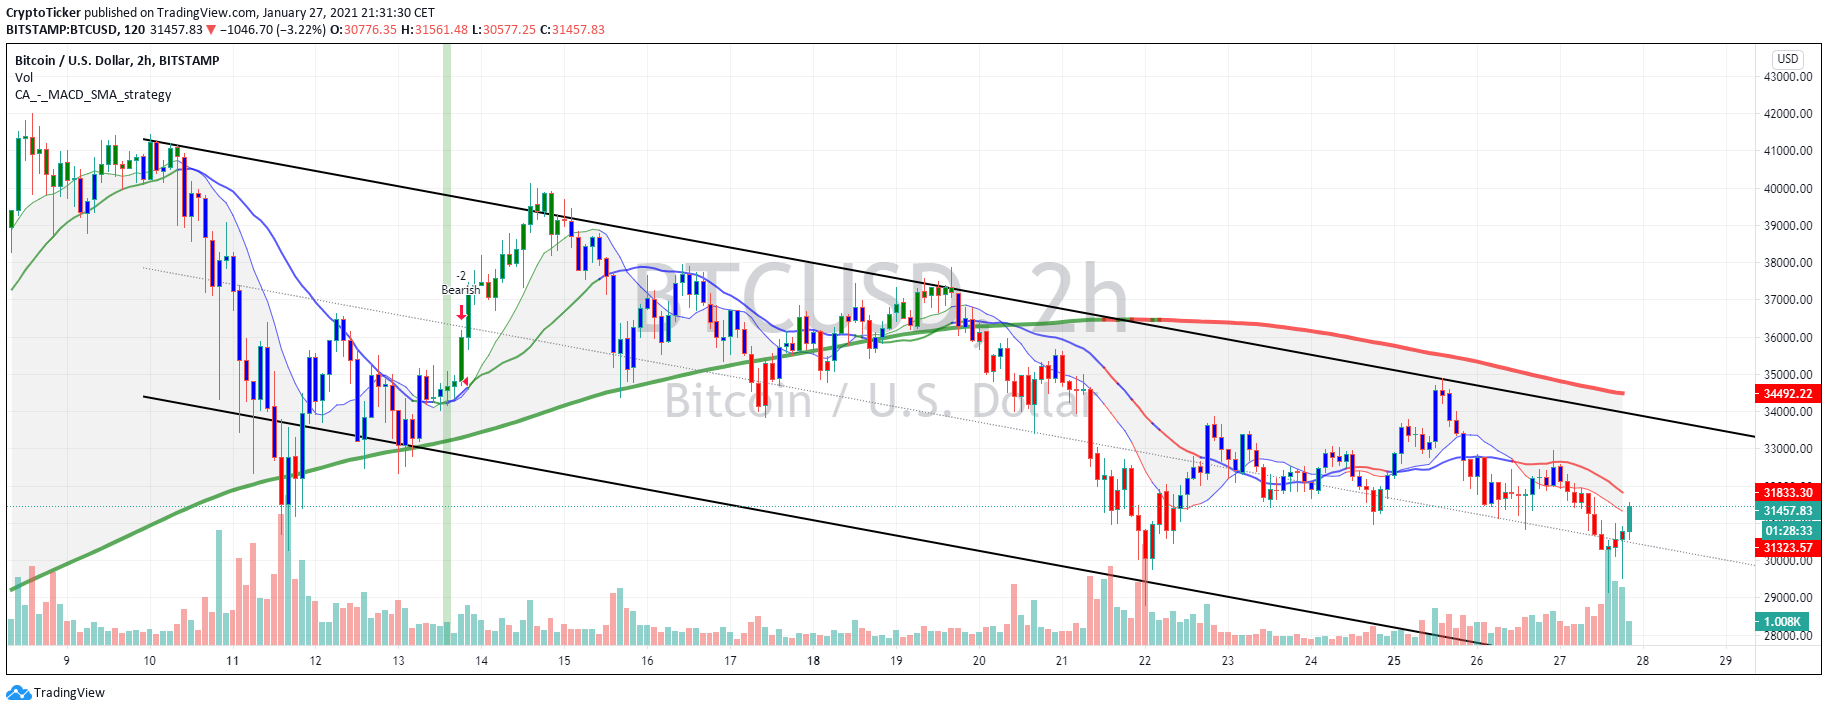 BTC/USD 2-hour chart showing a downtrend channel